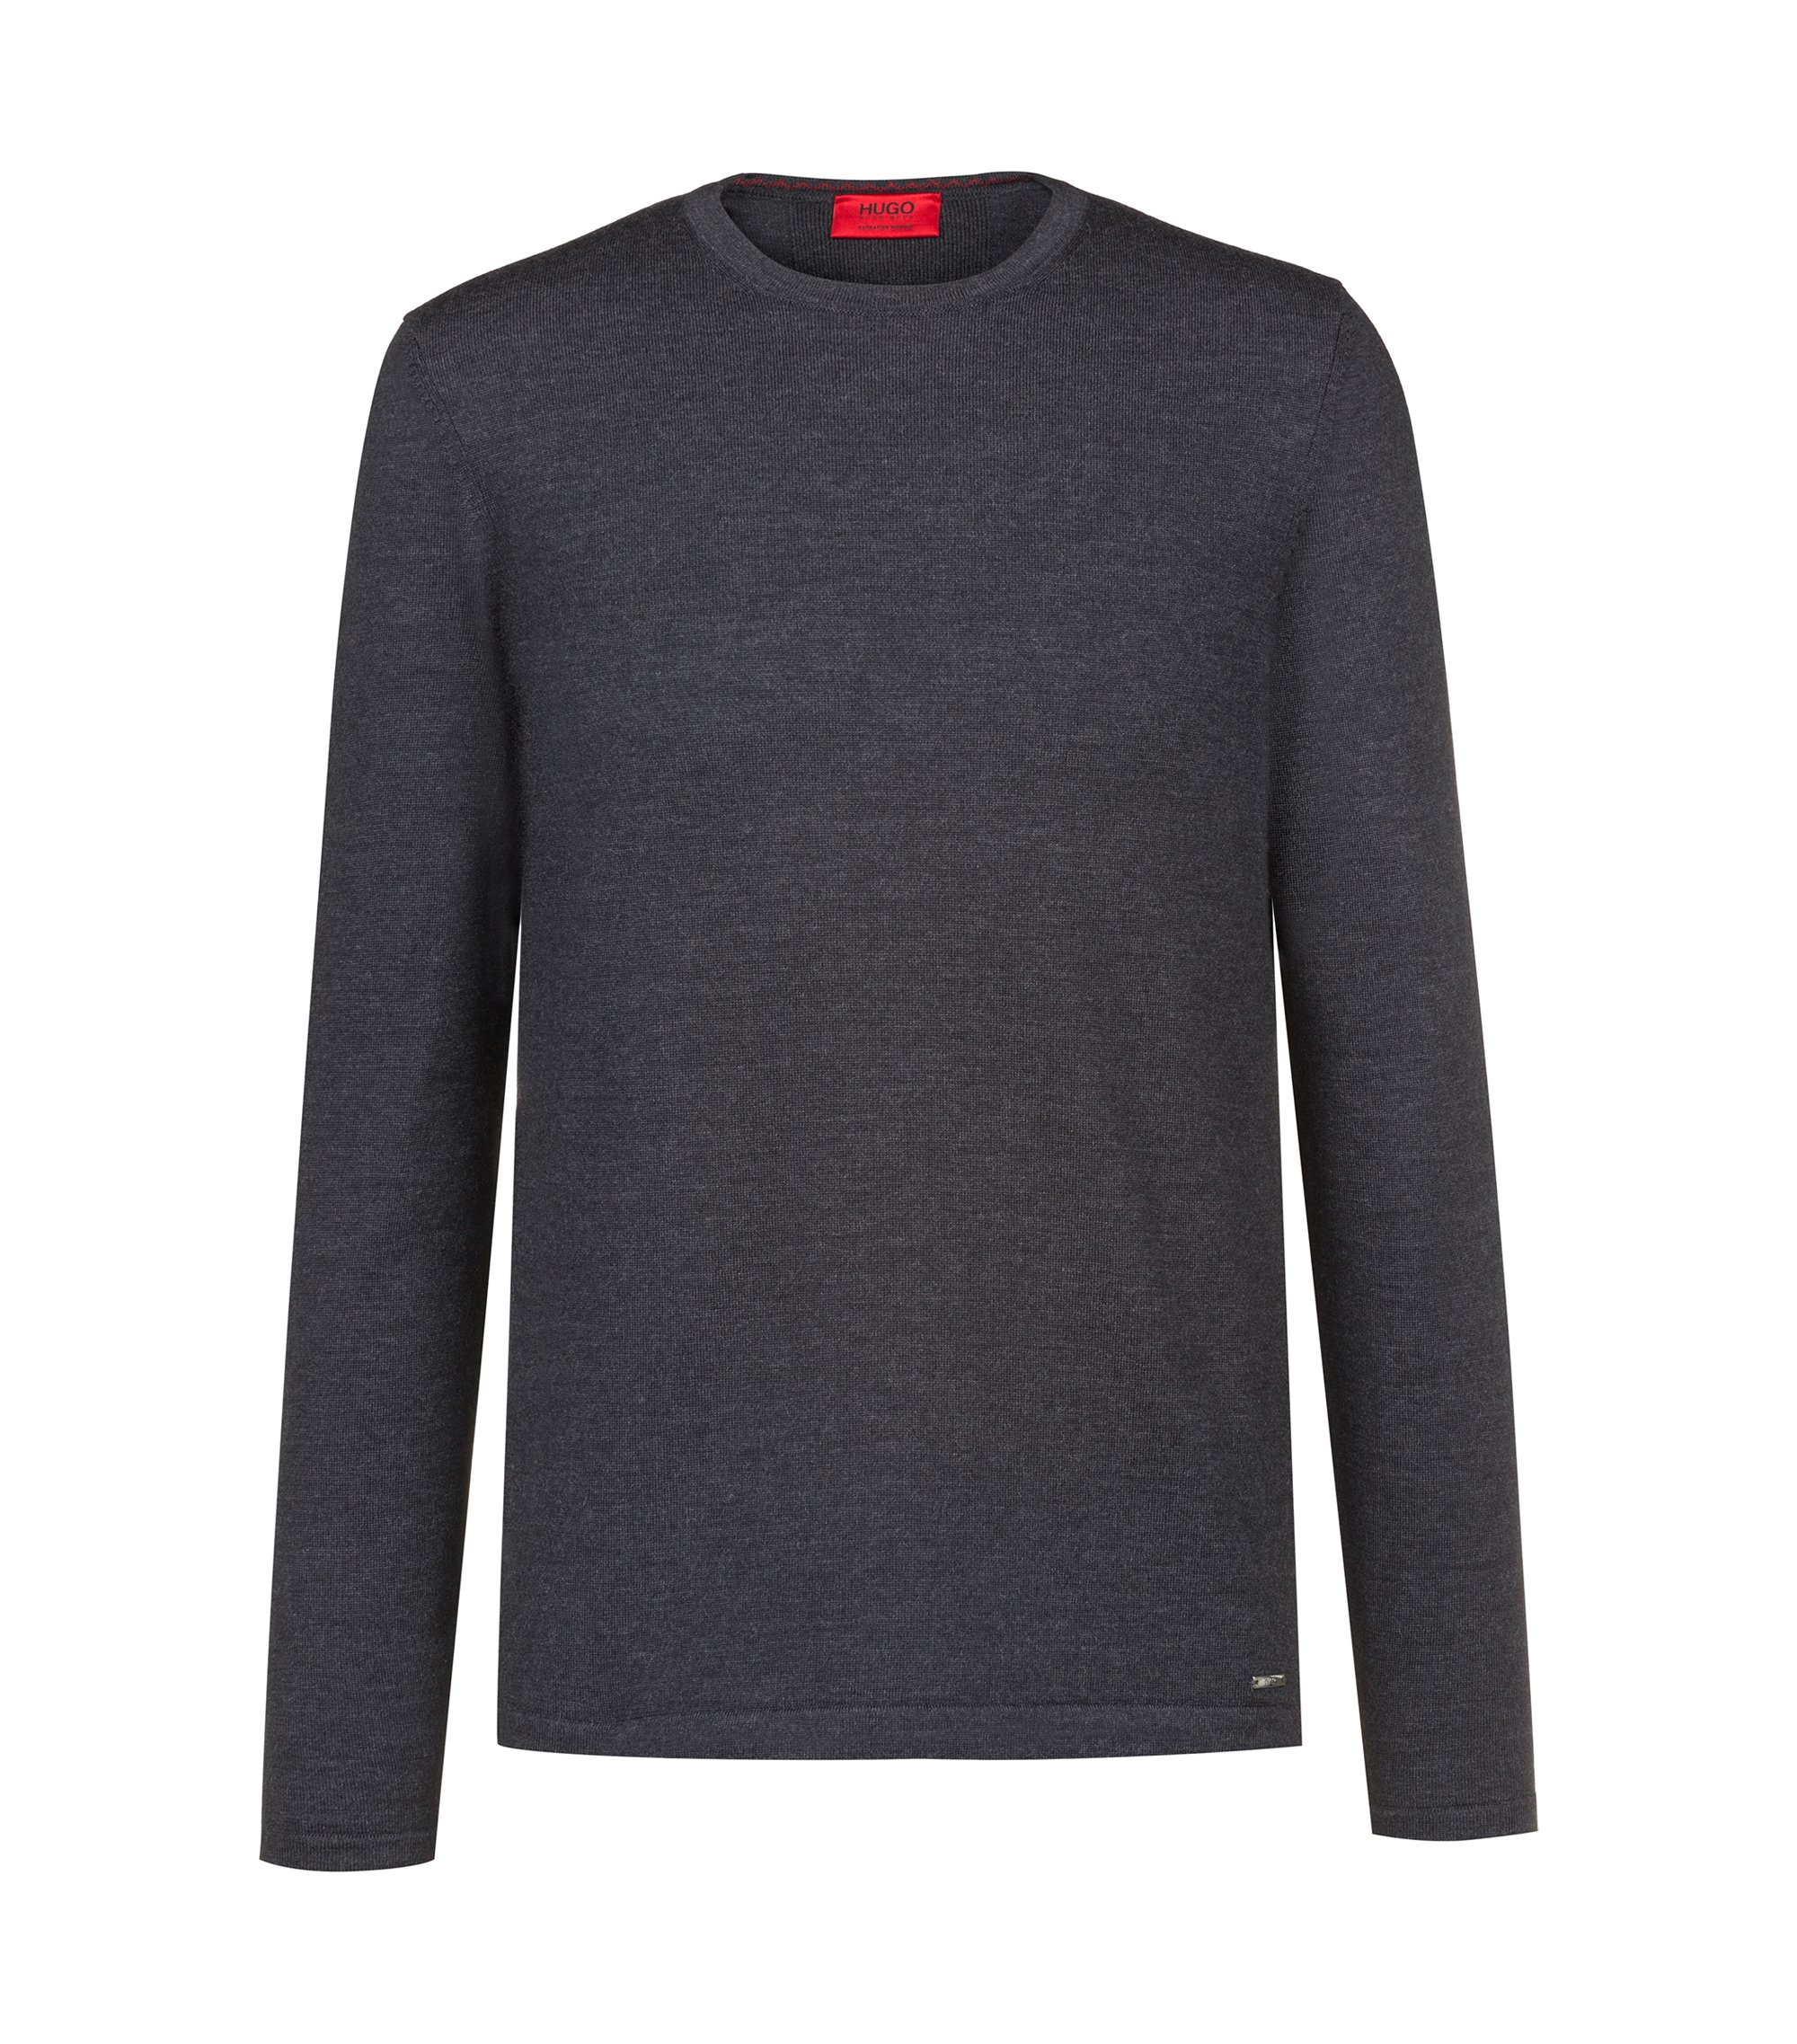 Crew-neck sweater in Merino wool, Anthracite